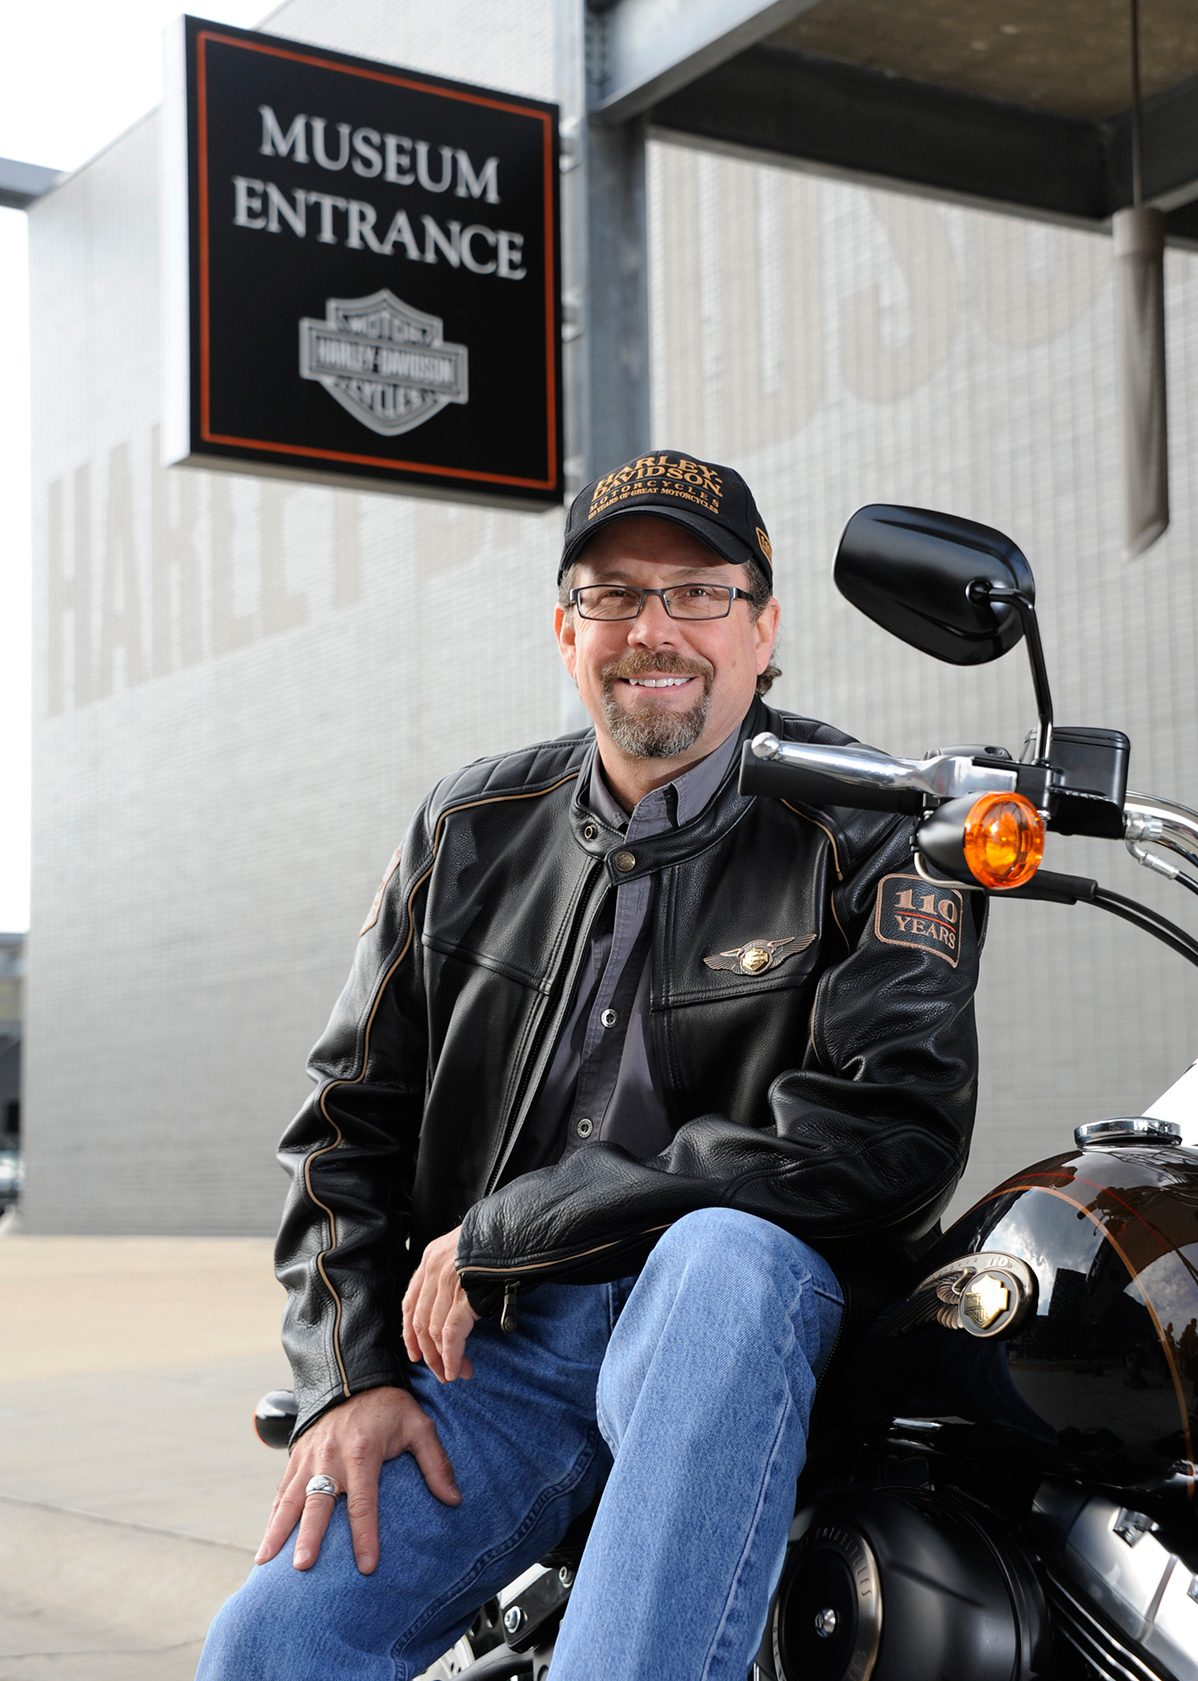 talking hogs, old and new, with the great-grandson of harley